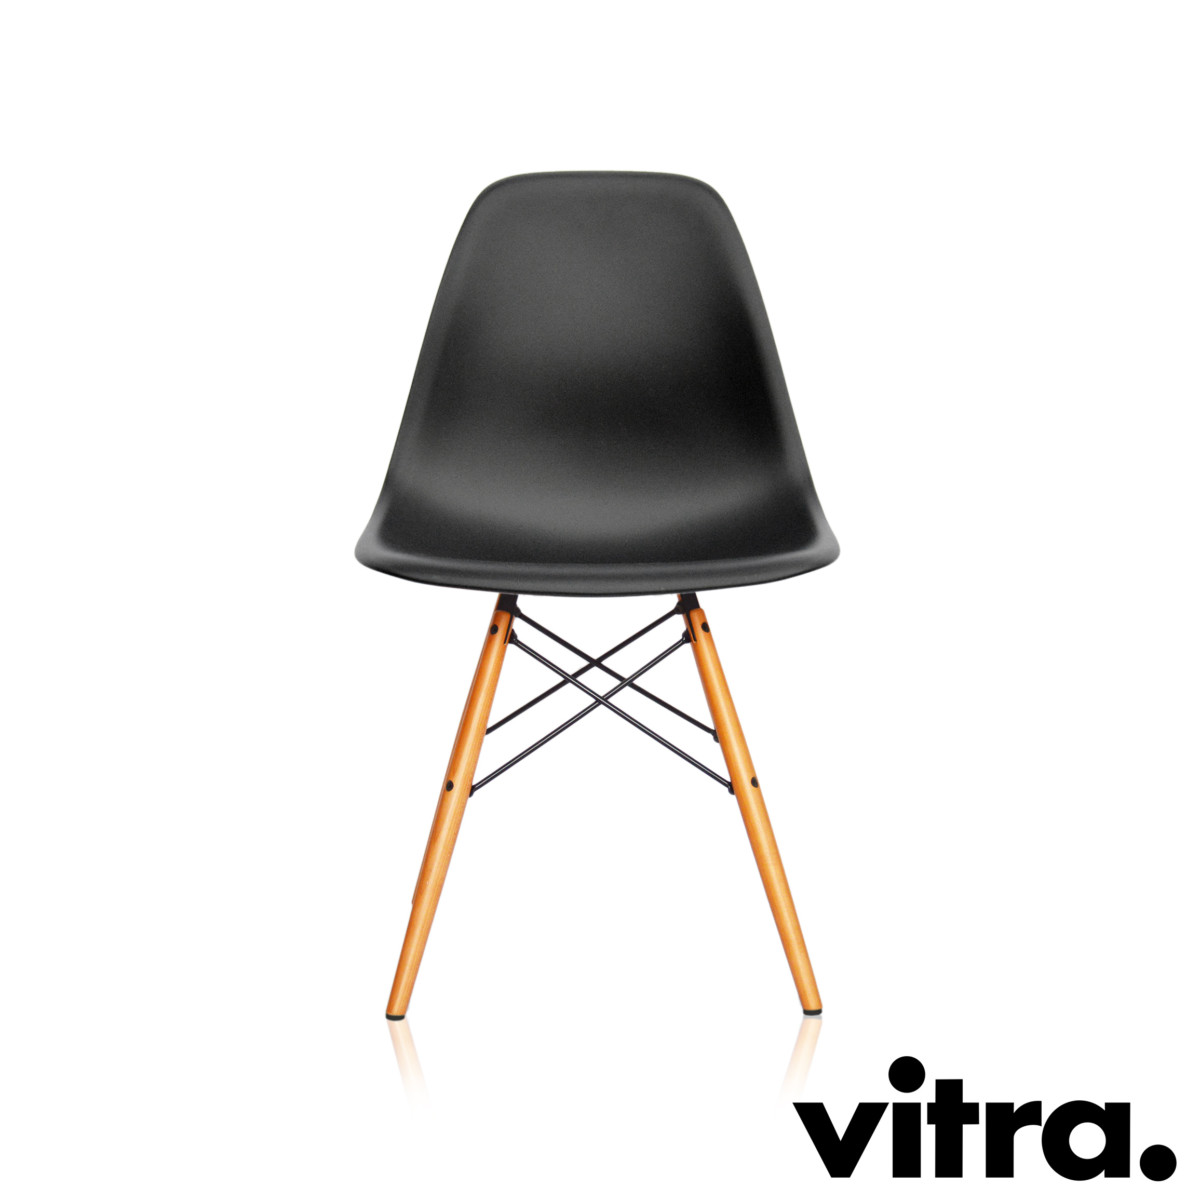 vitra eames plastic side chair dsw ahorn chairs model. Black Bedroom Furniture Sets. Home Design Ideas